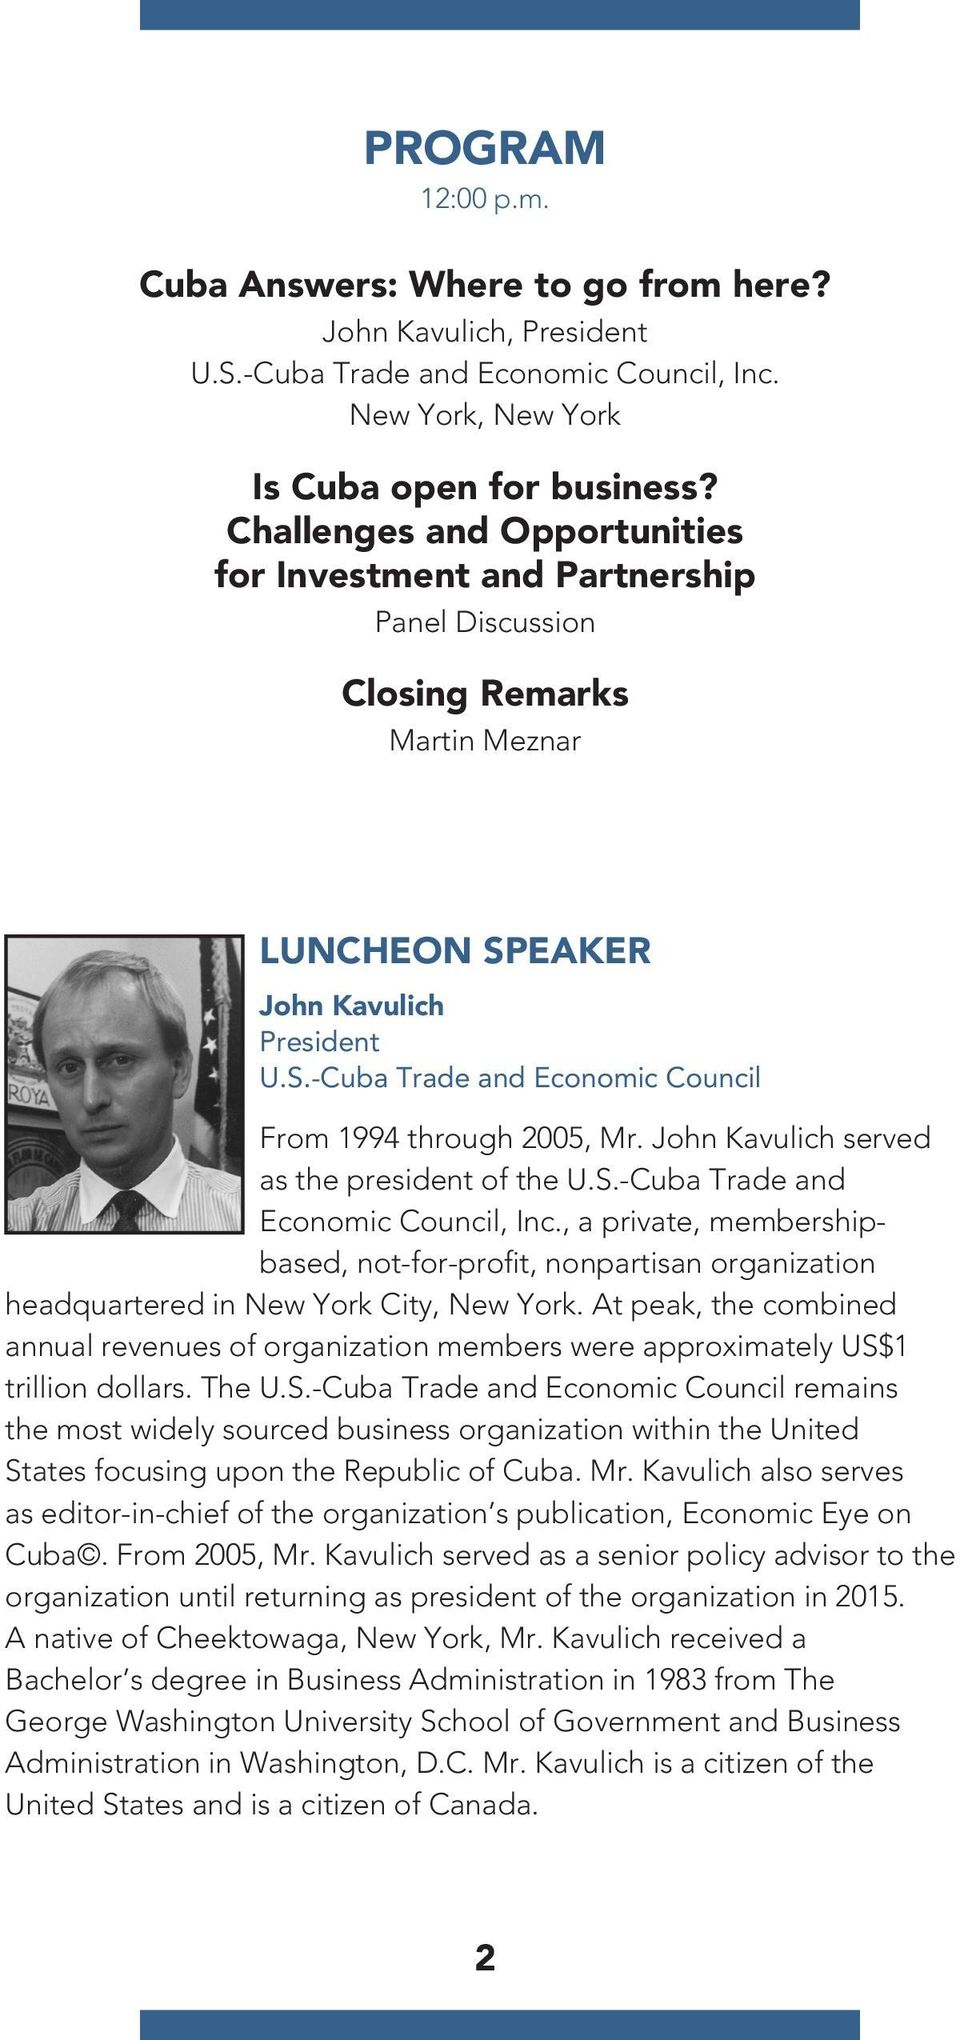 John Kavulich served as the president of the U.S.-Cuba Trade and Economic Council, Inc., a private, membershipbased, not-for-profit, nonpartisan organization headquartered in New York City, New York.